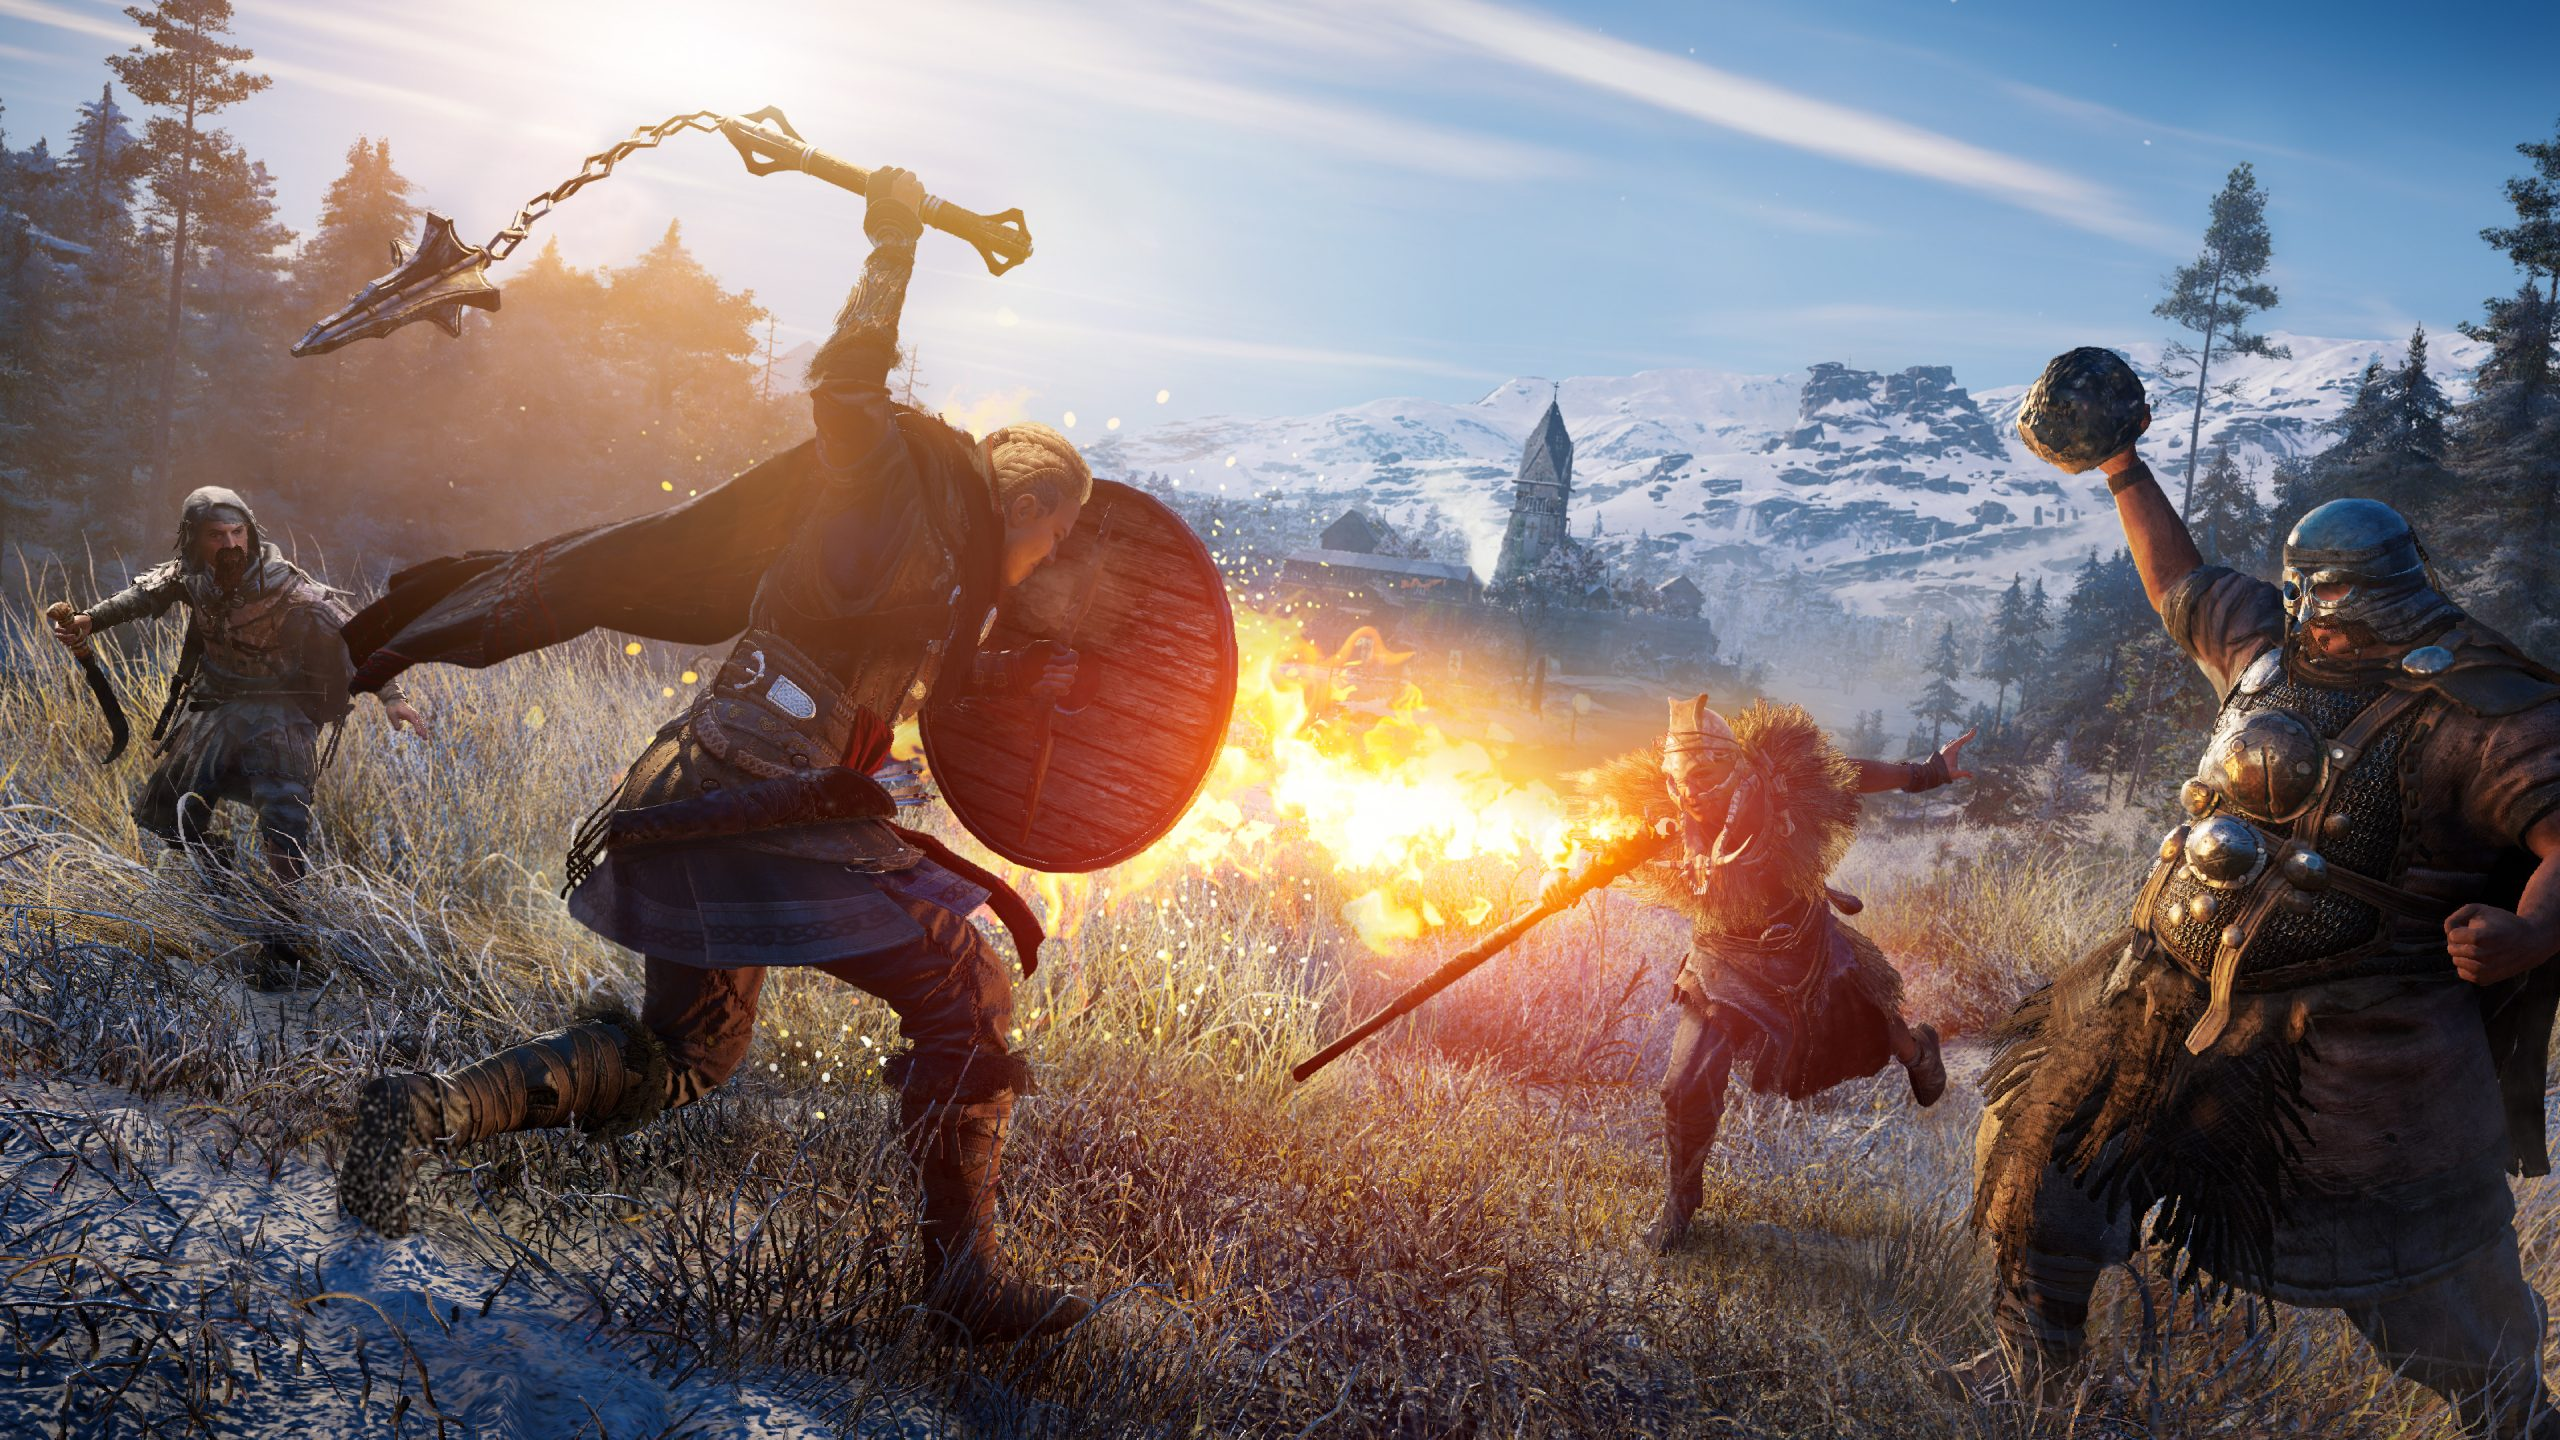 New Video Confirms That Assassin's Creed Valhalla Will Perform Best On Xbox One